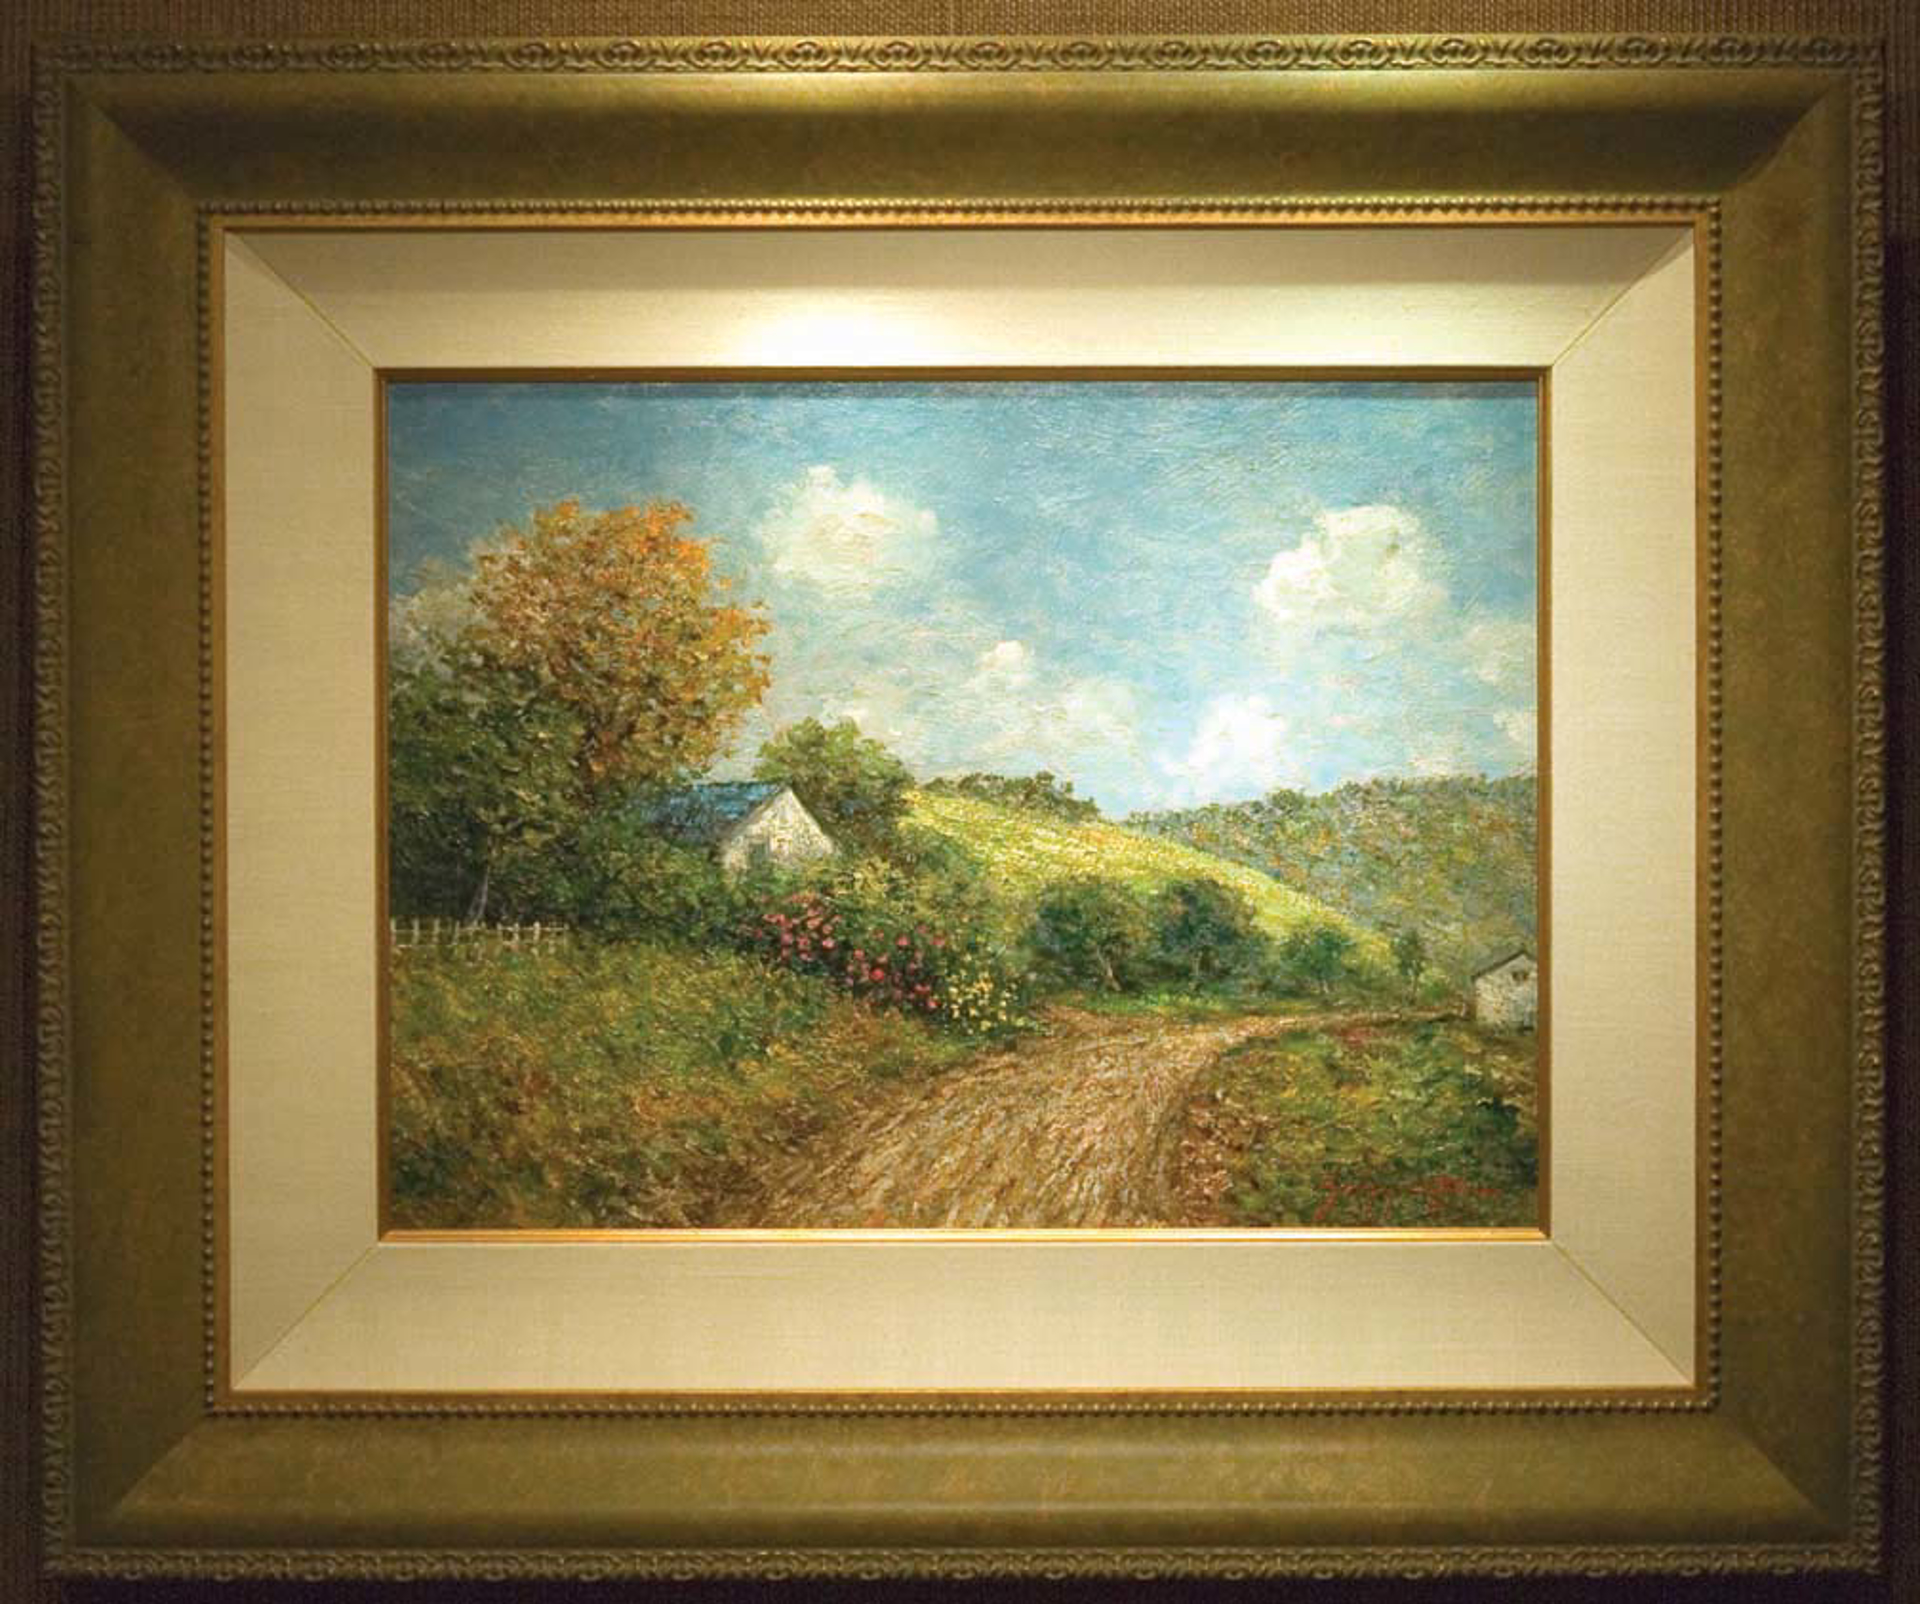 Scotts Valley Country Lane by James Scoppettone